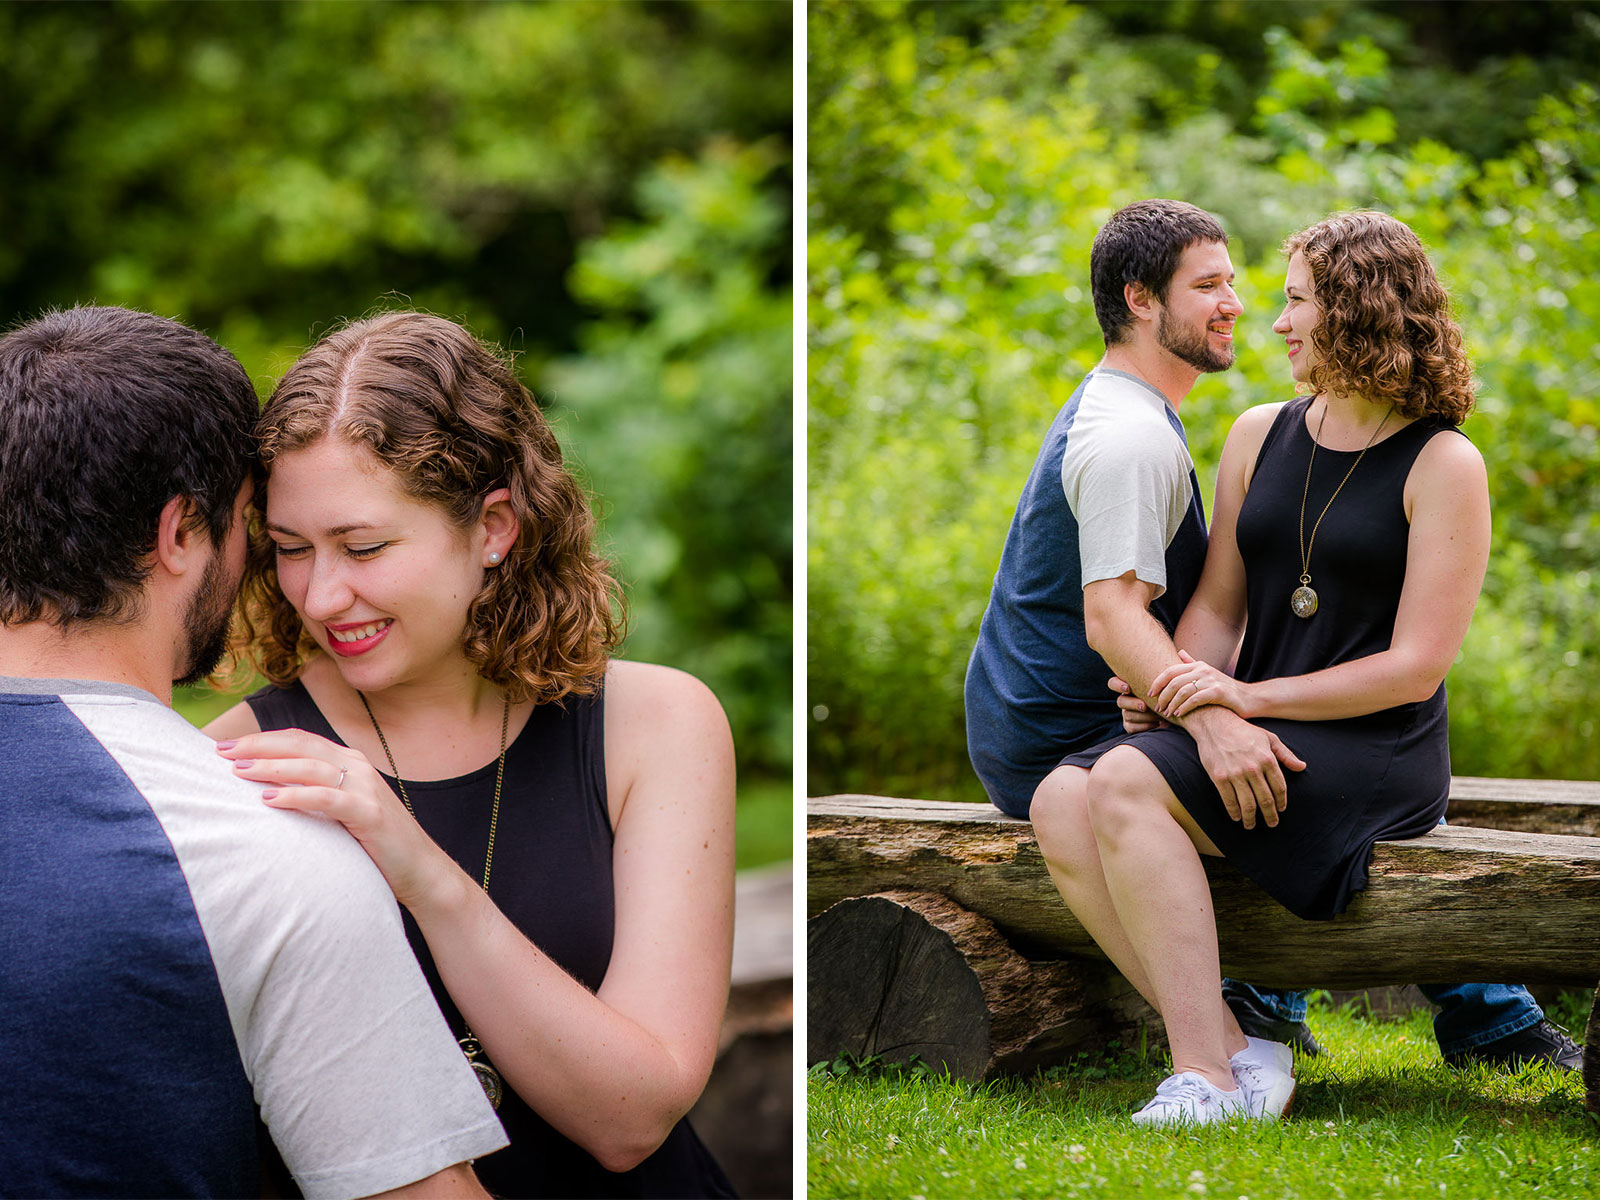 Eric_and_Christy_Photography_Blog_Engagement_Andrea_Clint-9-10